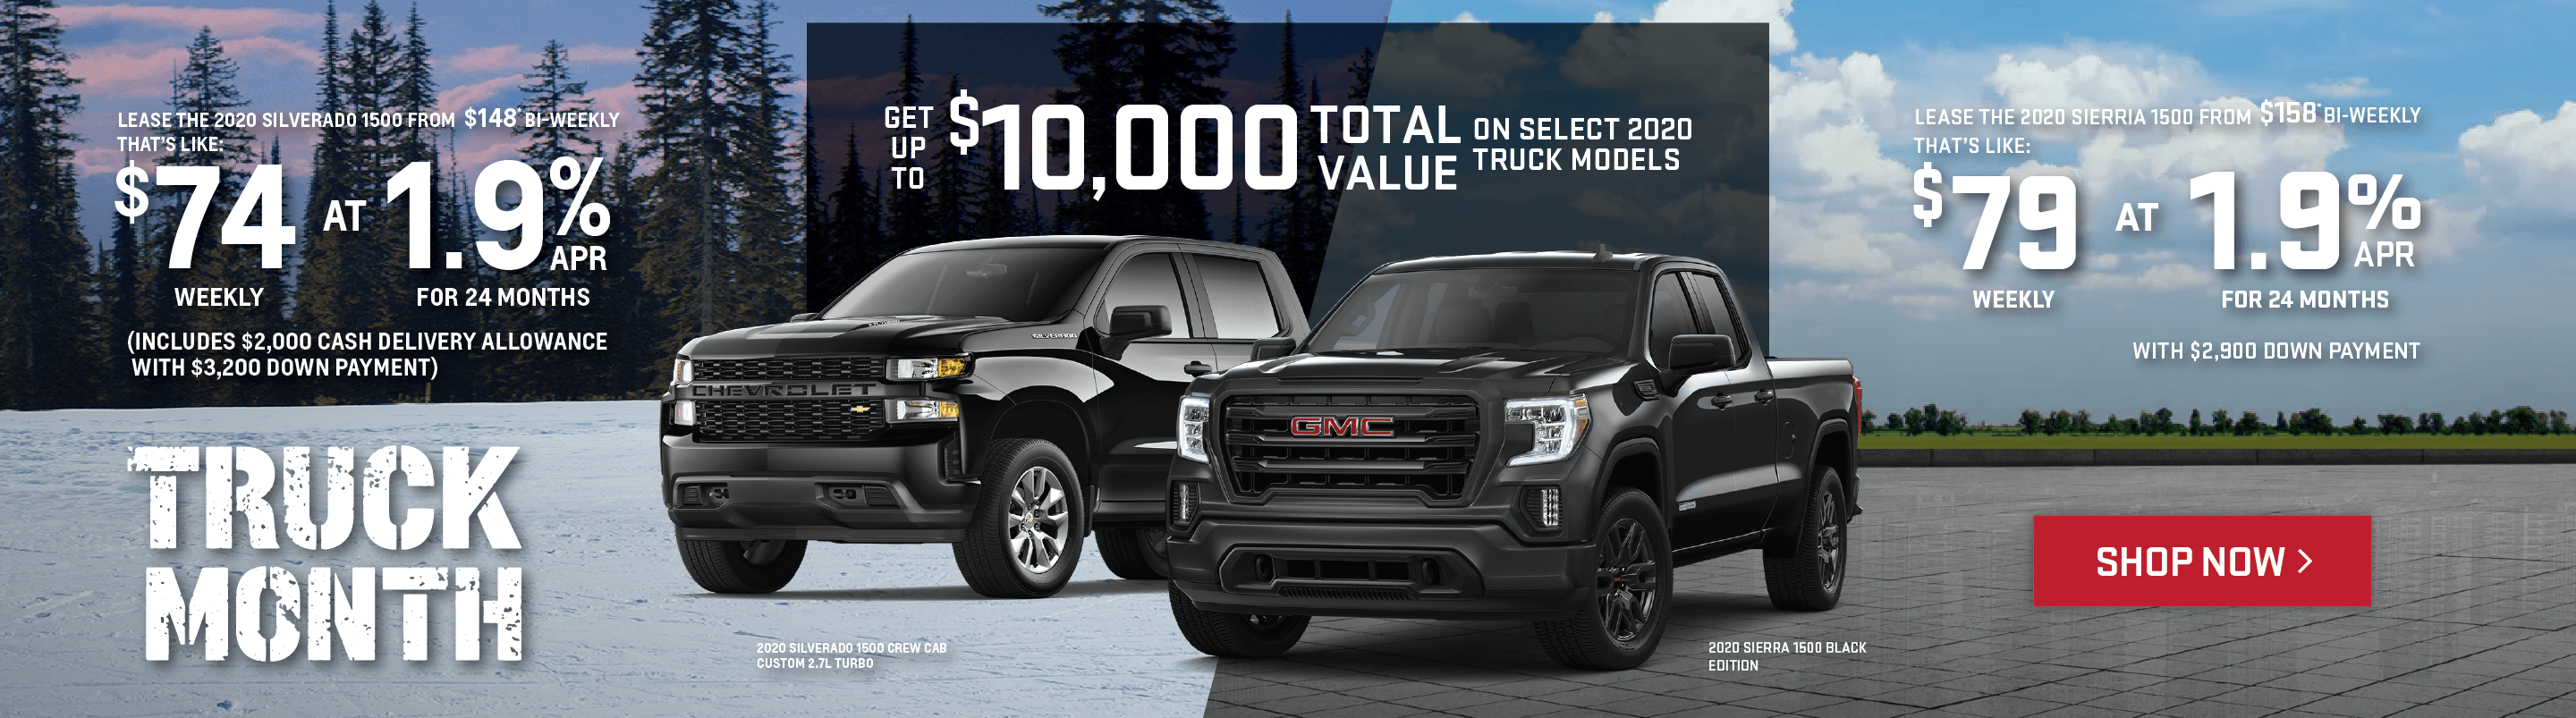 Chevrolet Silverado & GMC Sierra Truck Month Offers in Toronto